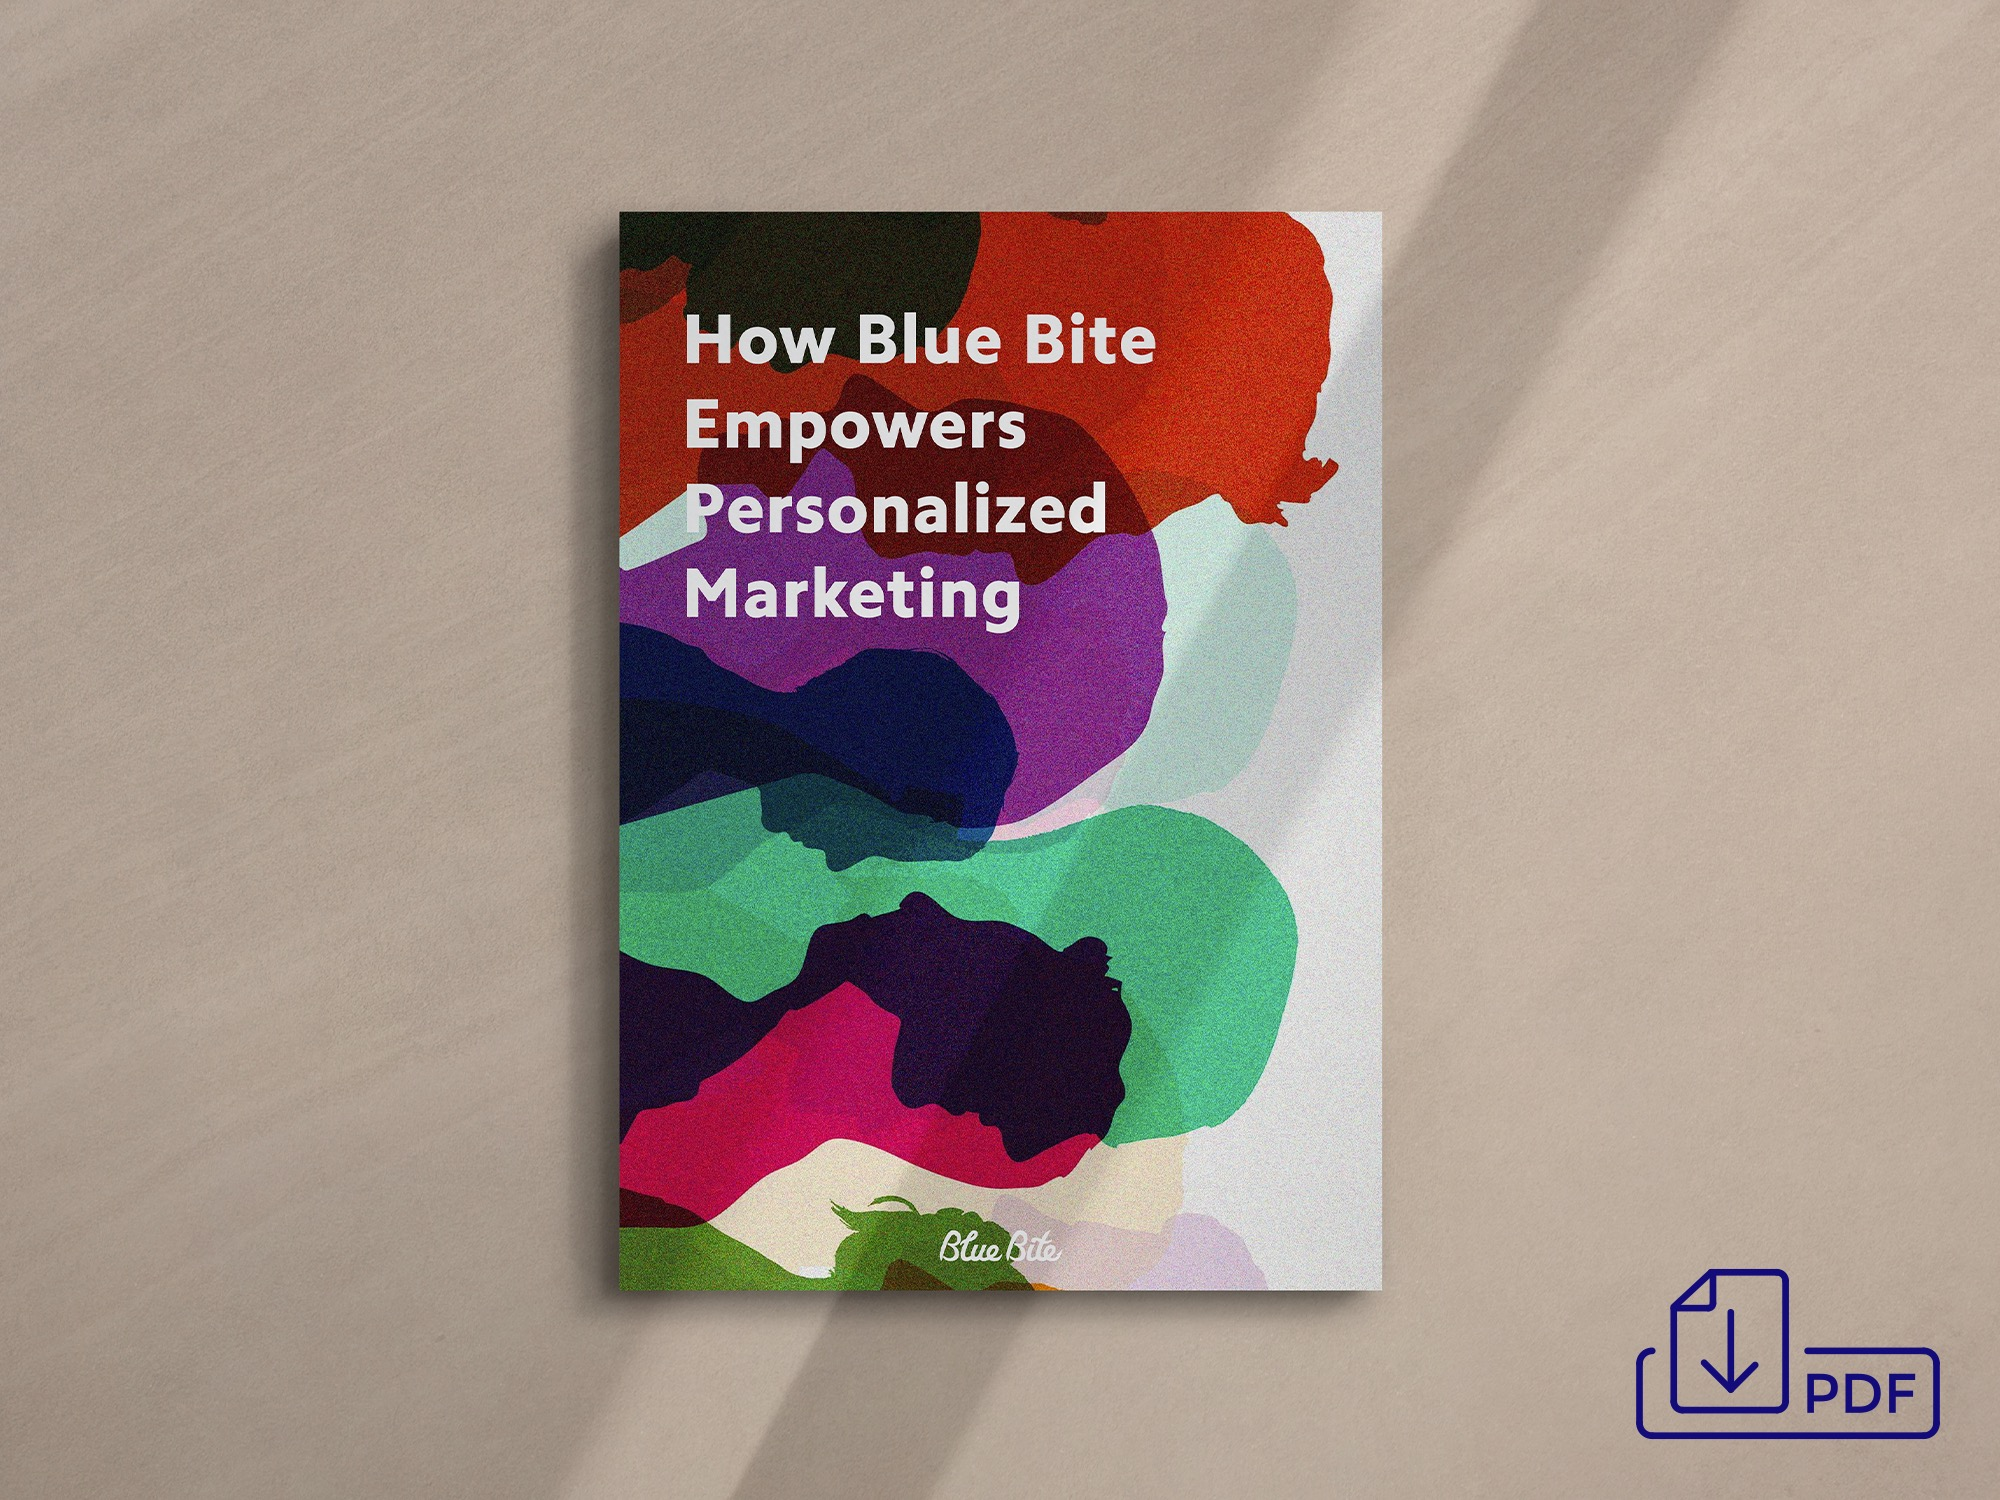 Get the Personalized Marketing PDF